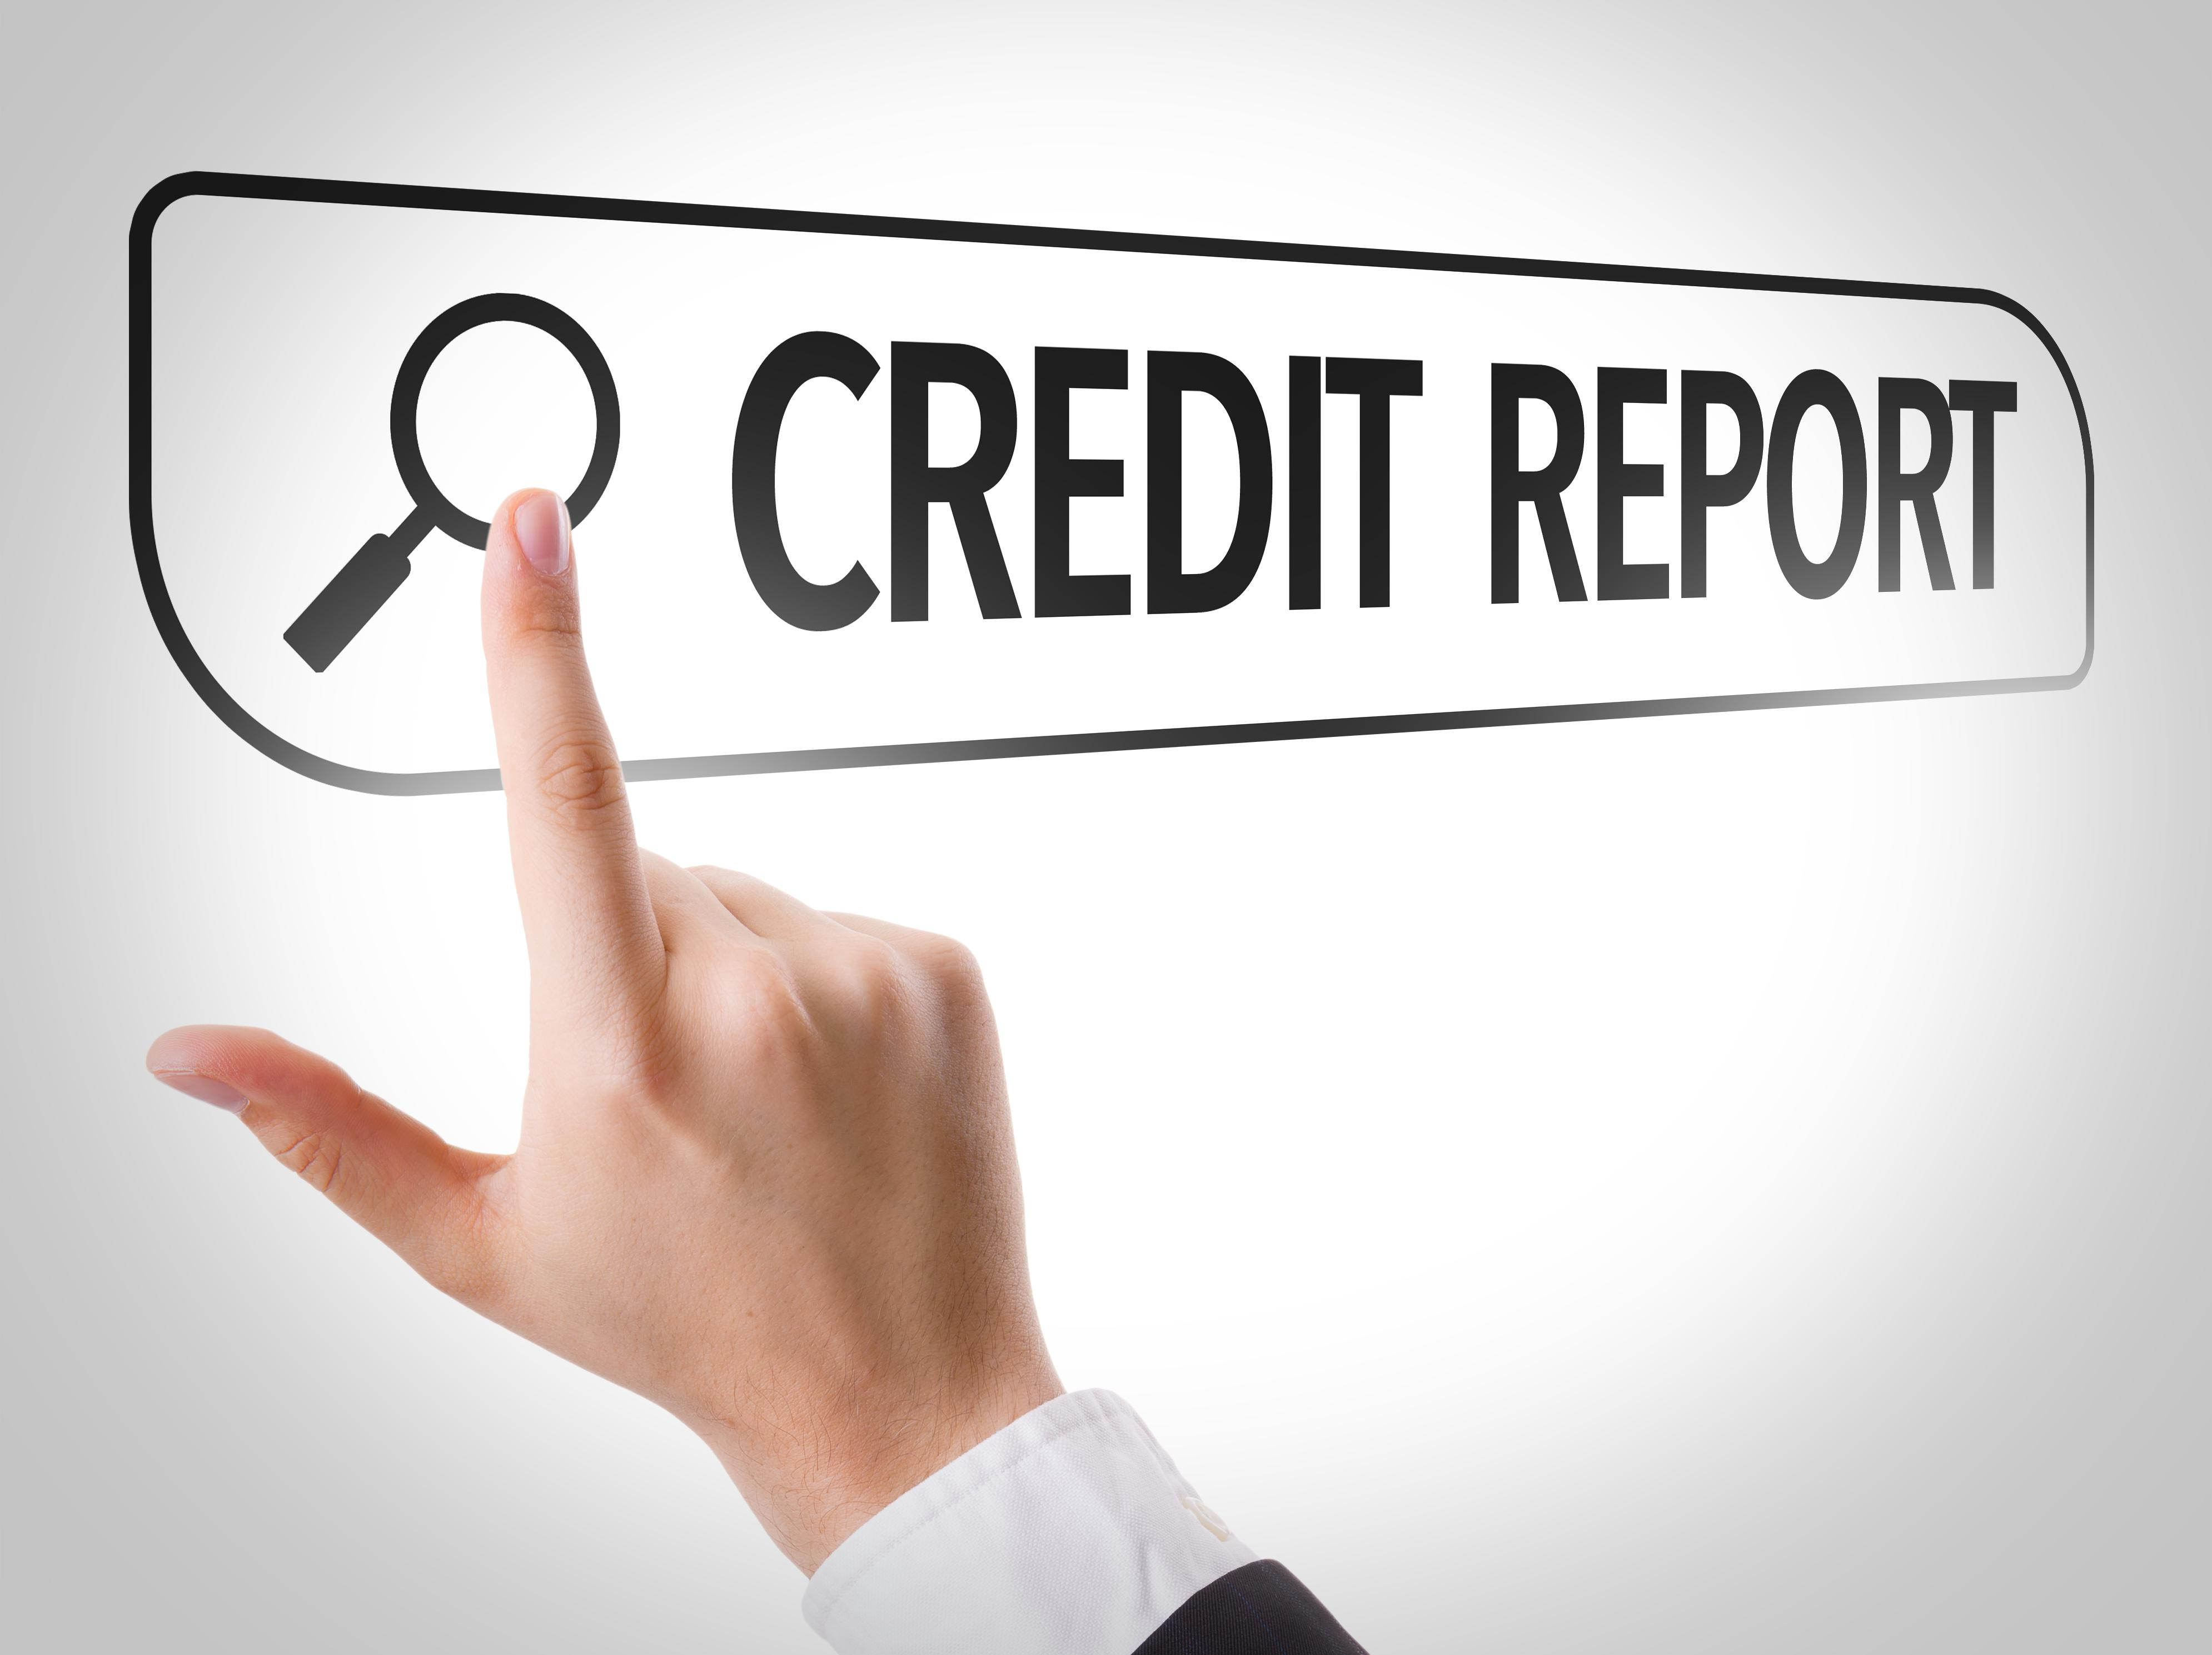 Can A Potential Employer Legally View My Credit Report? On Sbchecks.com